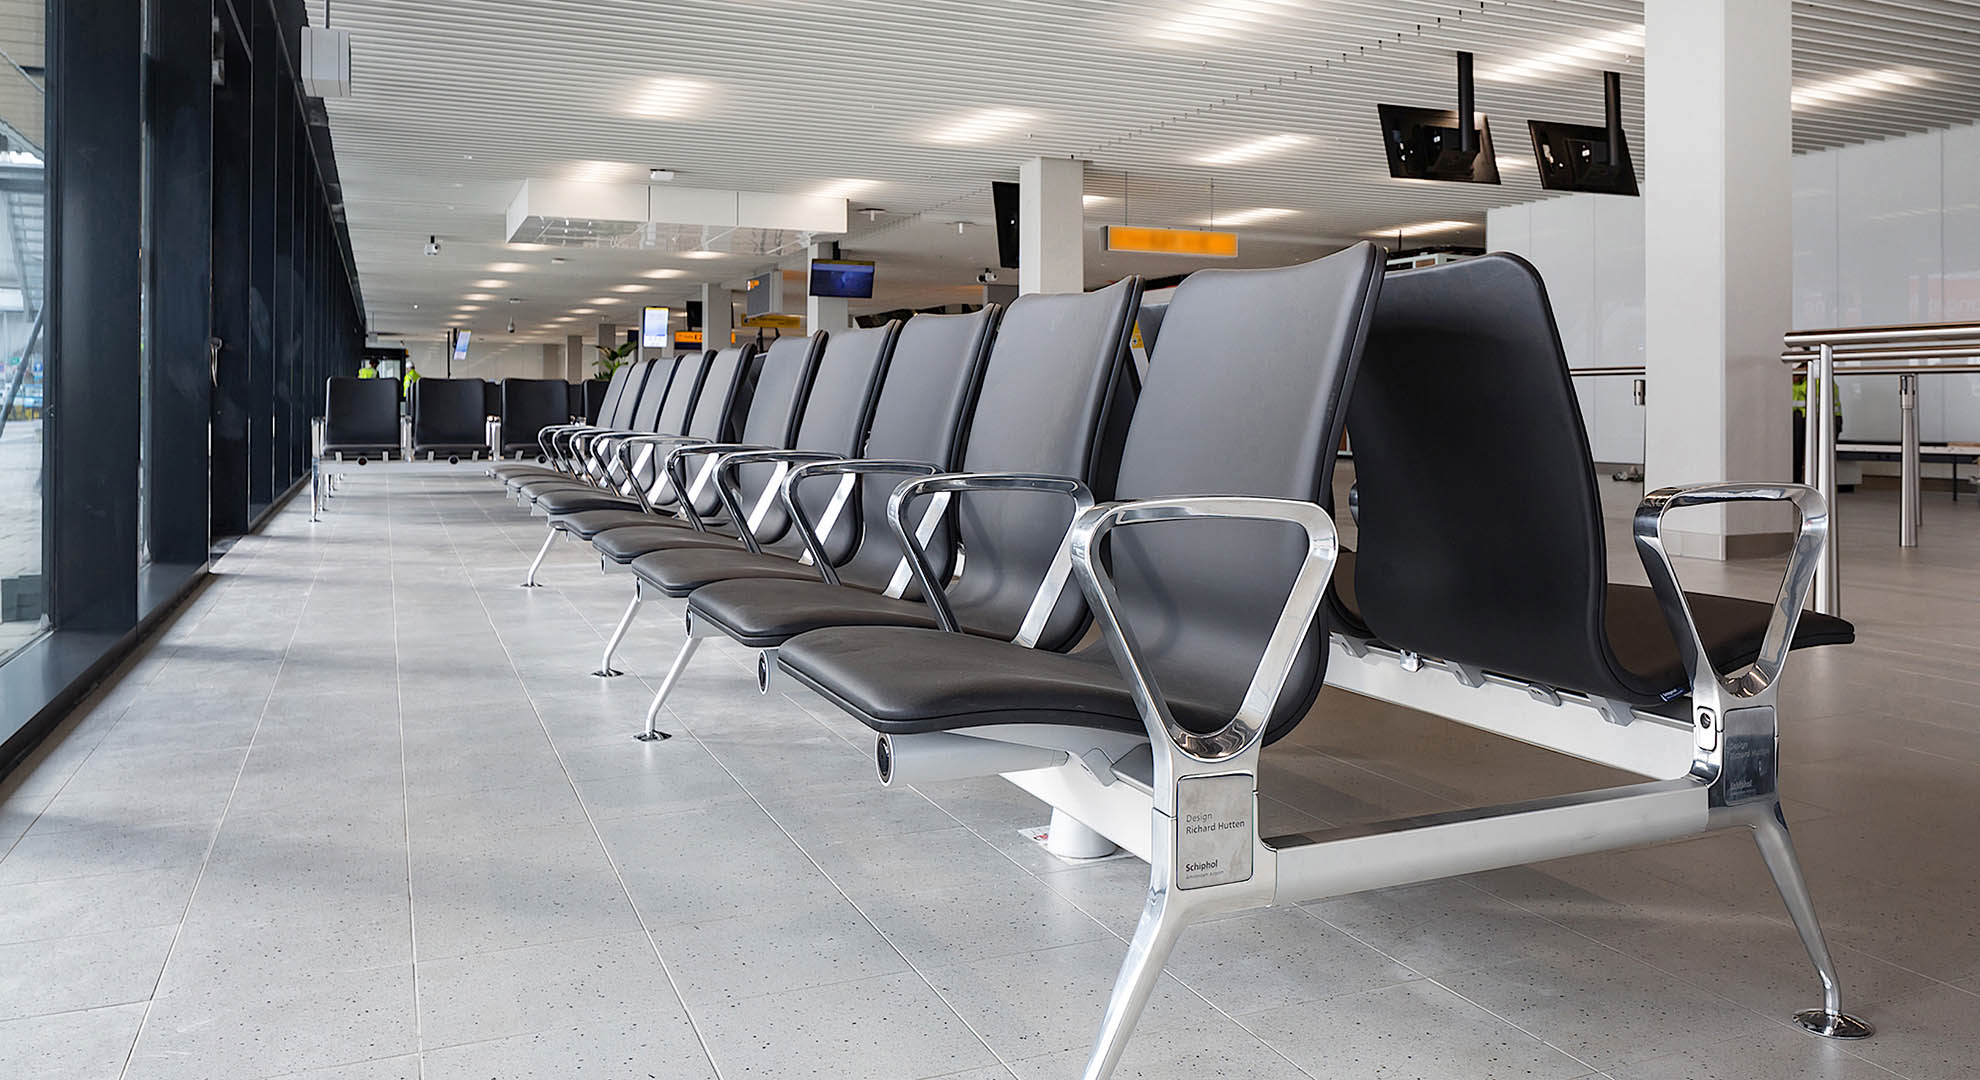 For the seats at Schiphol Airport, the designer used coconut hair to avoid plastic.